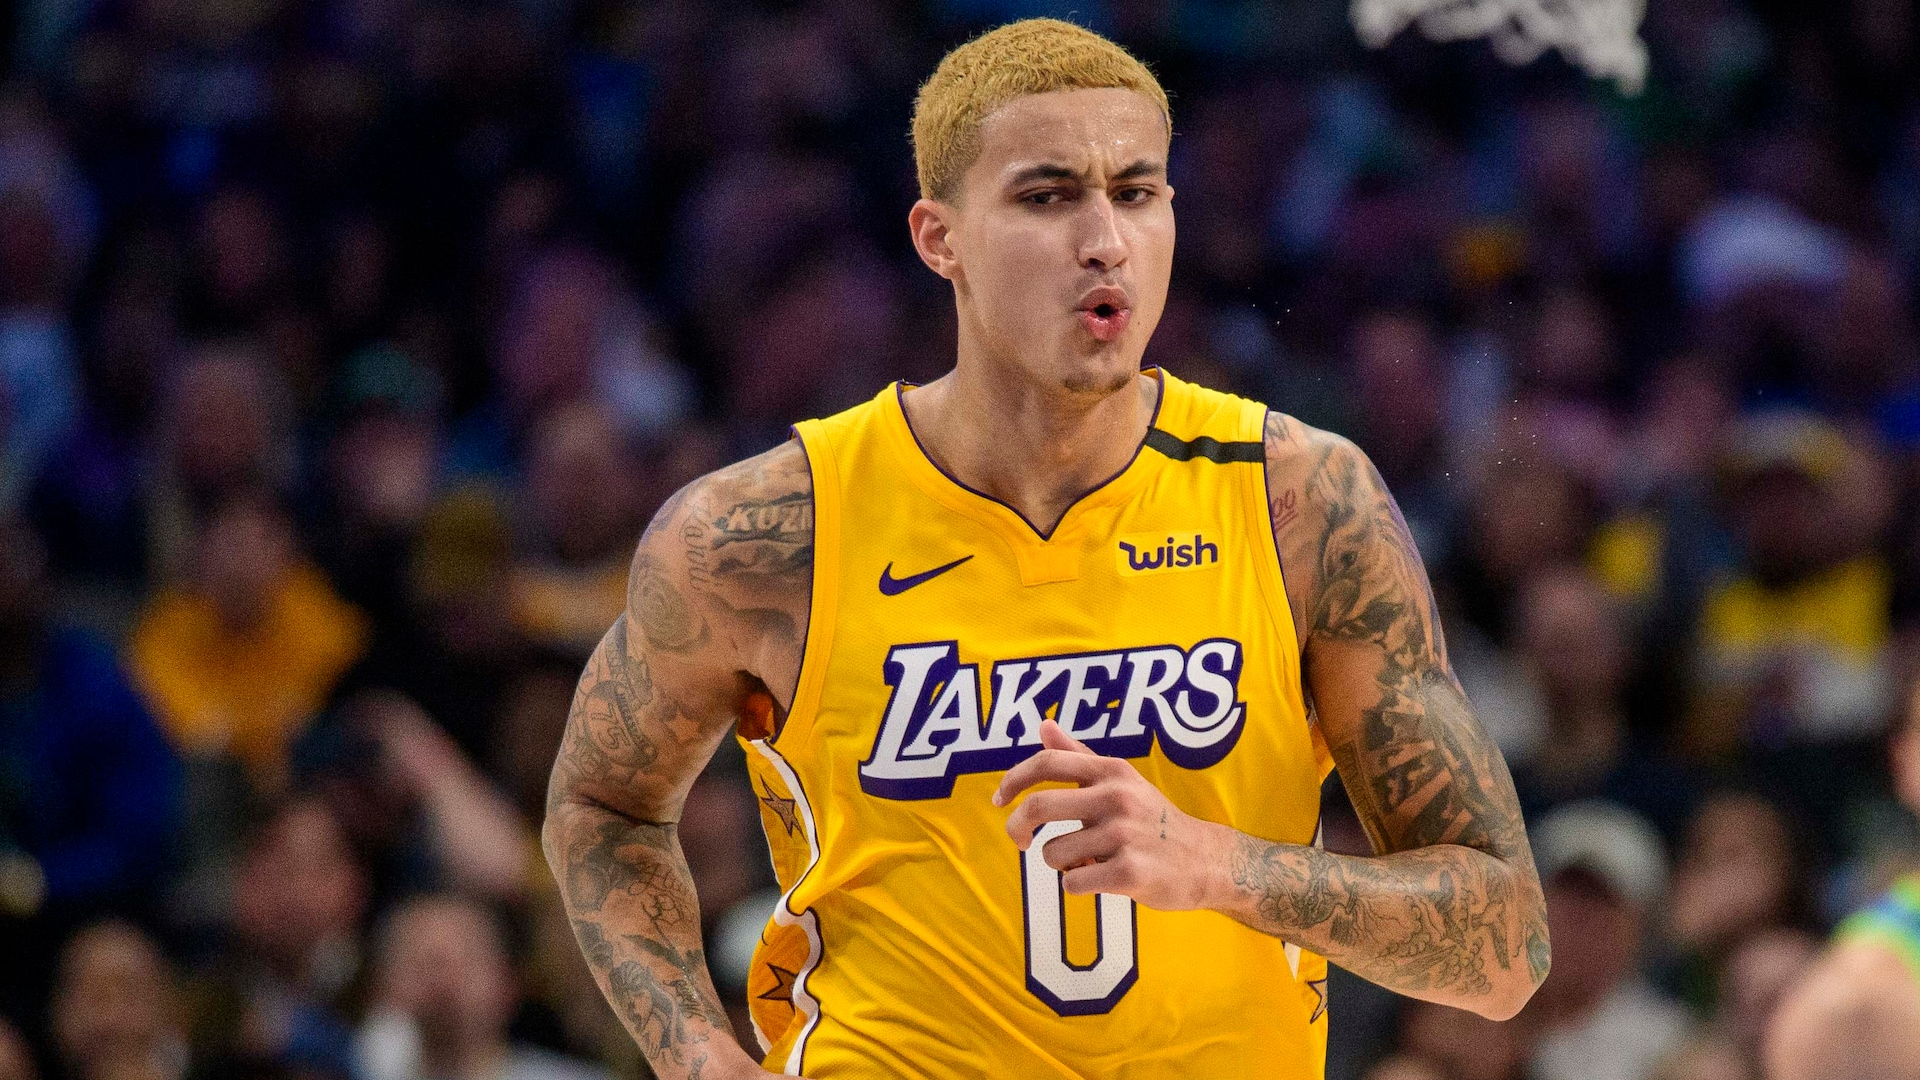 Lakers still waiting for real Kyle Kuzma to please stand up